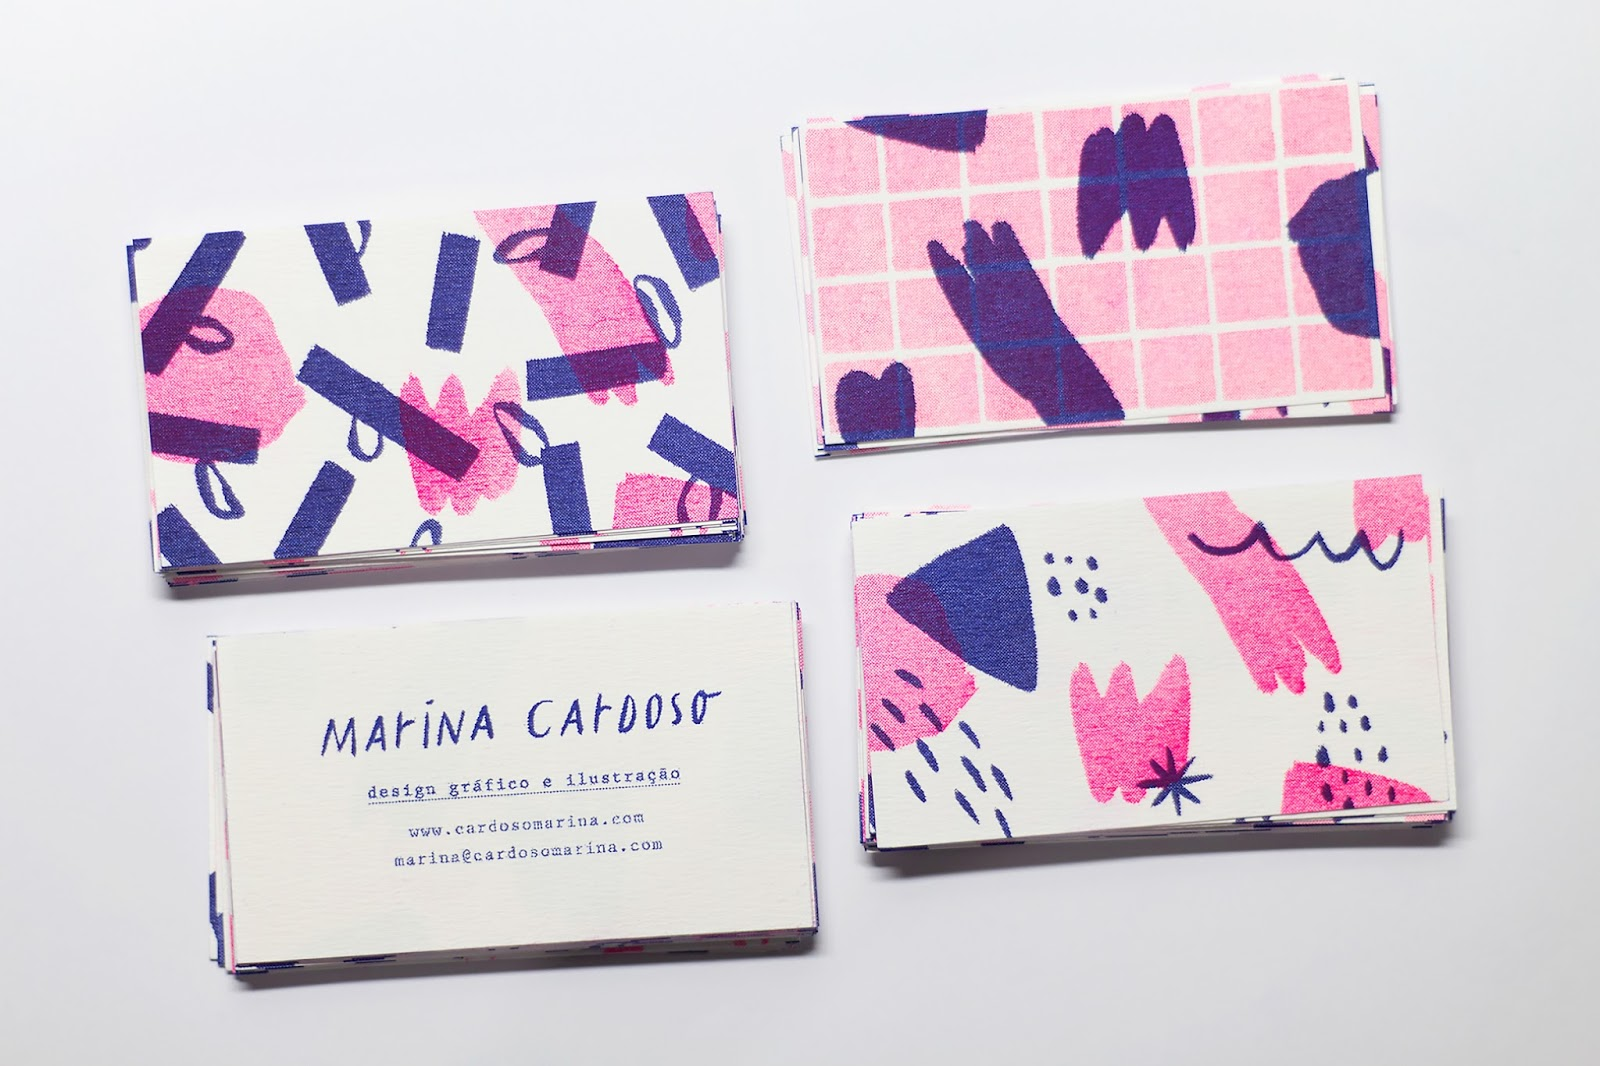 Good design makes me happy marina cardoso business cards beautiful playful bright illustrations make marina cardosos personal business cards such a delight via fpo magicingreecefo Image collections